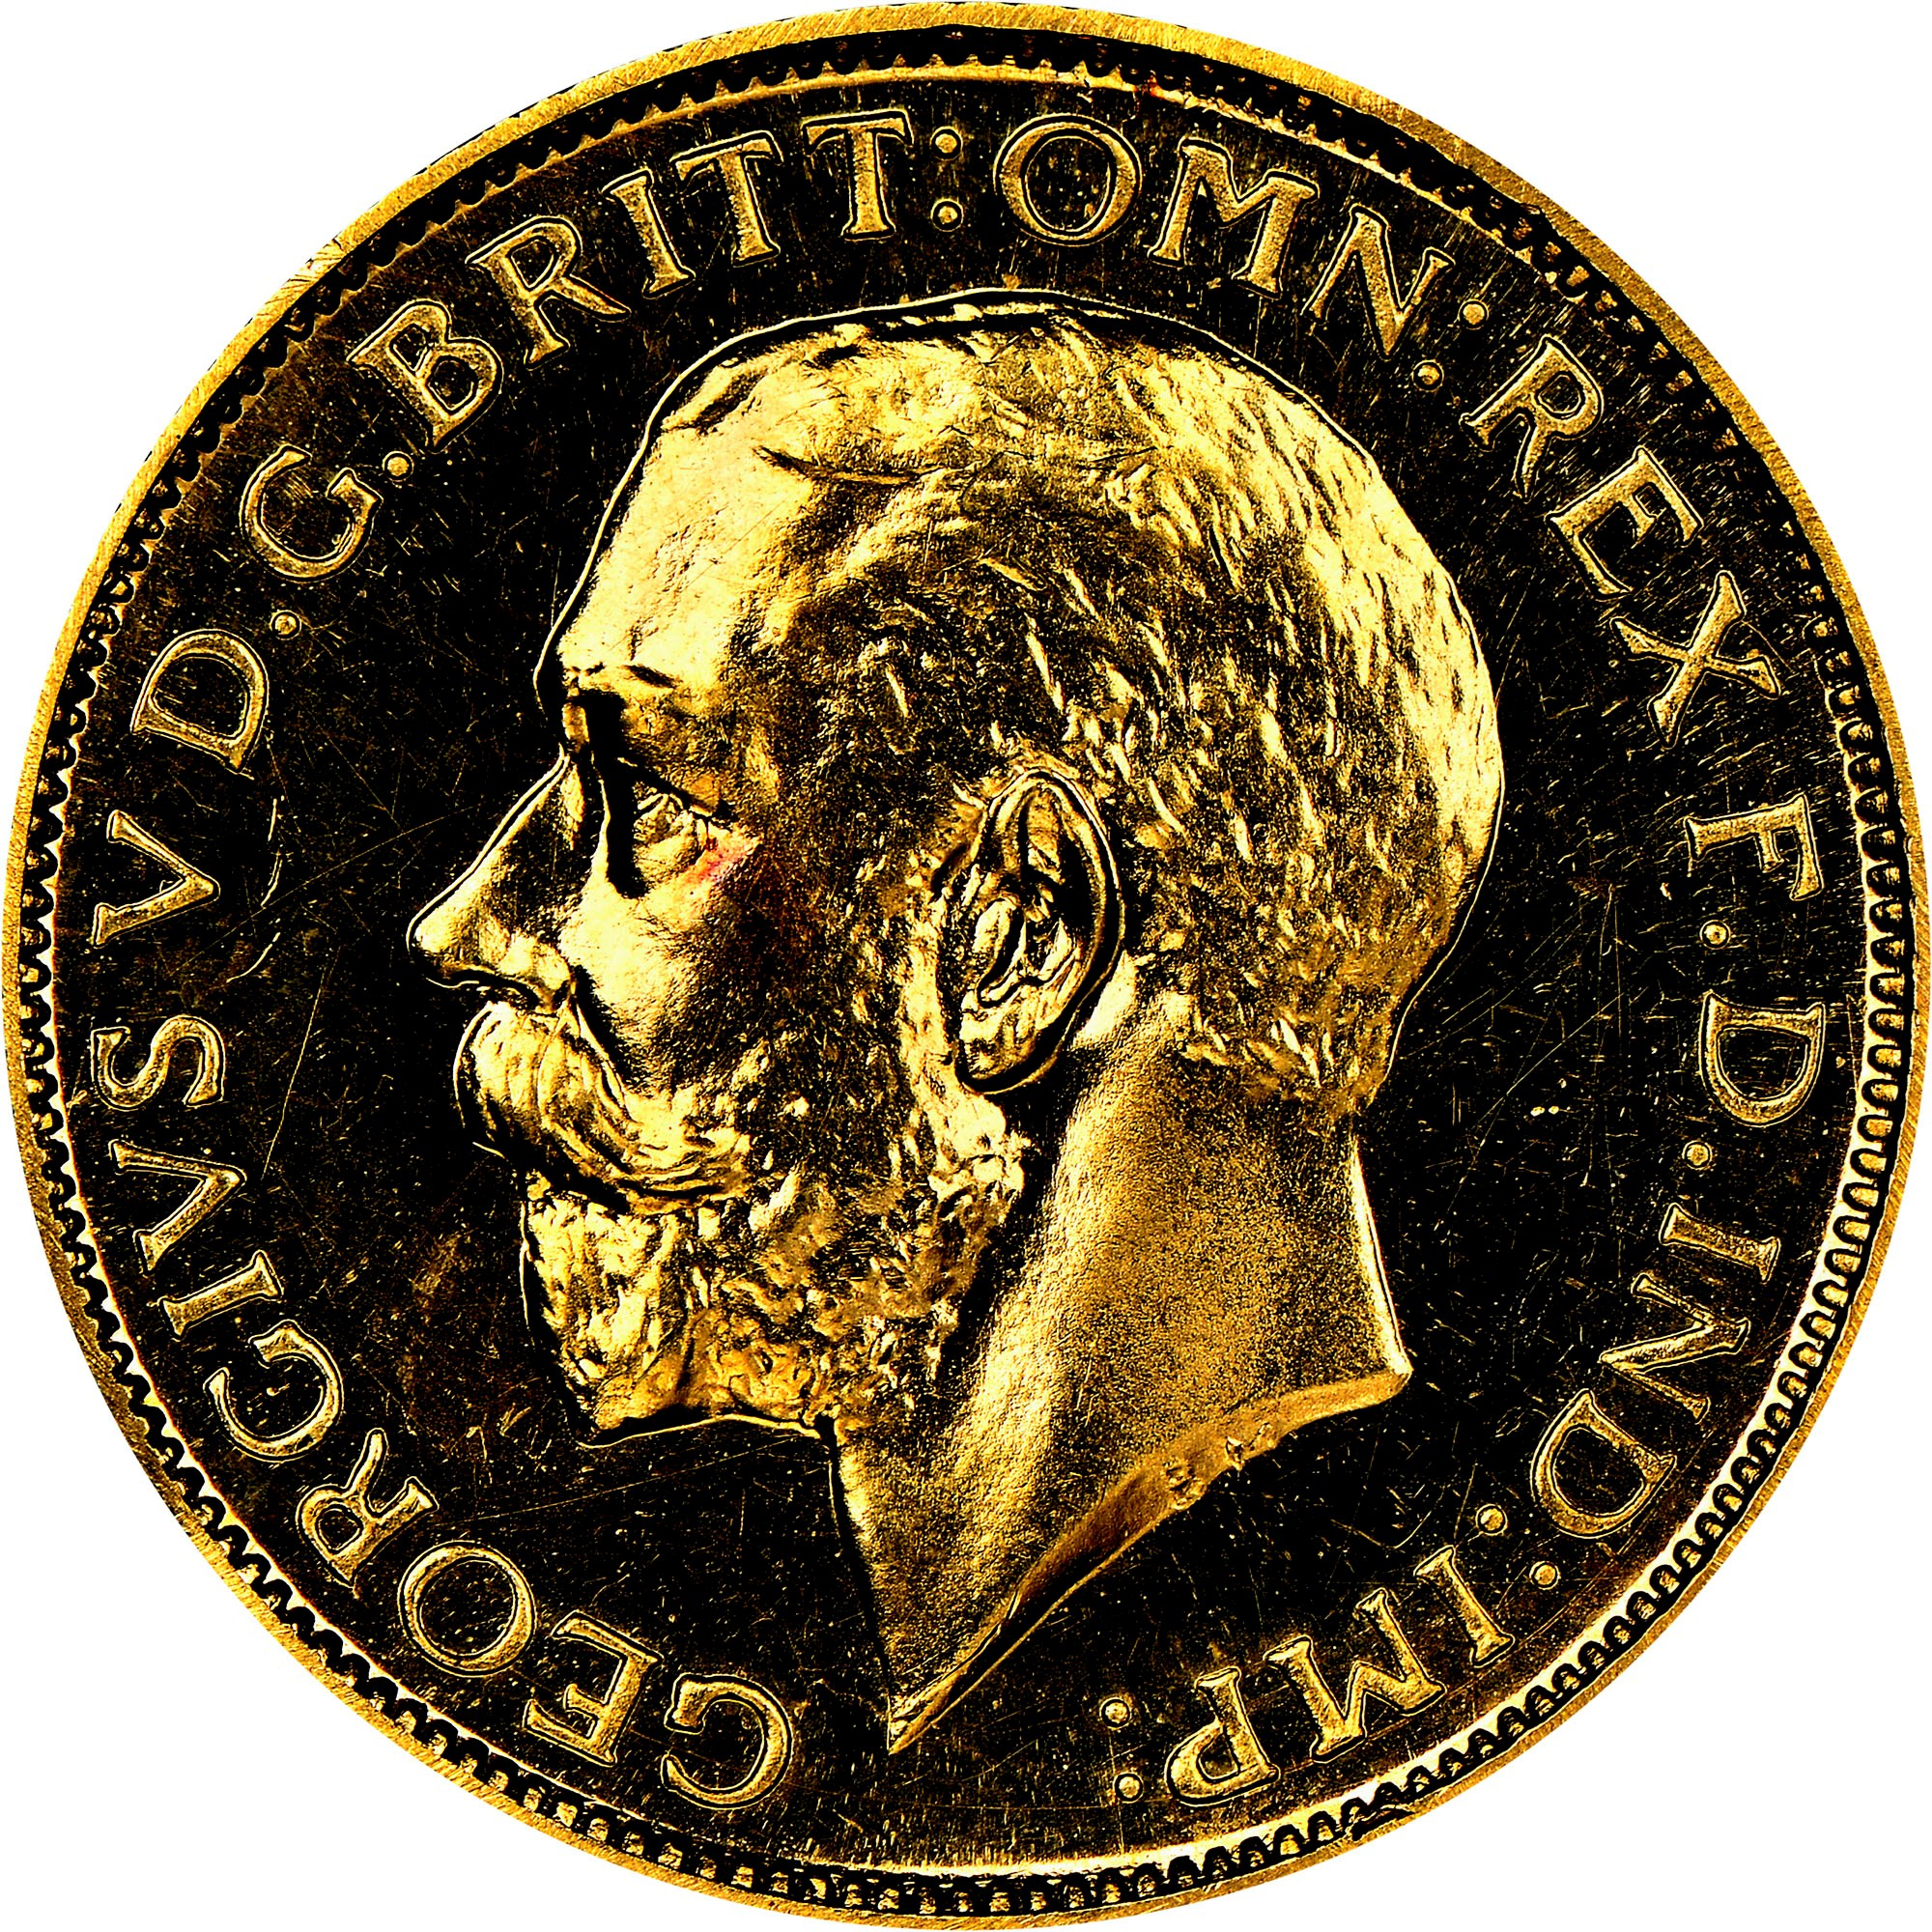 South Africa Sovereign obverse